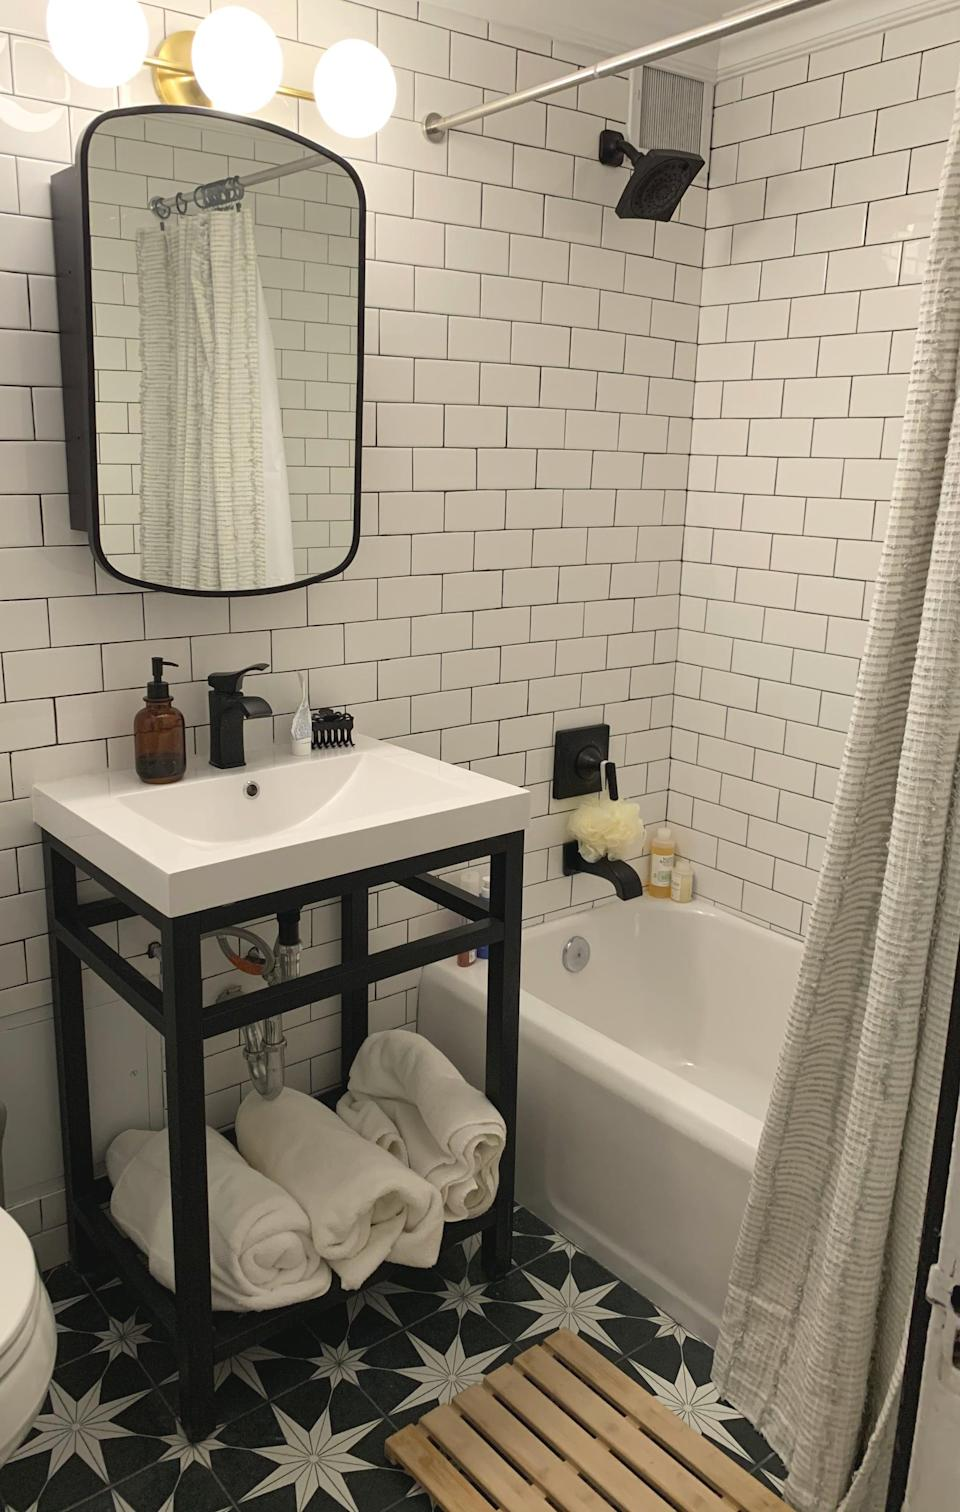 <p>We totally redid our bathroom, and it's now one of my favorite rooms in the house. Swapping silver hardwares for matte black finish and adding a graphic floor tile made a major difference in the overall feel. </p>